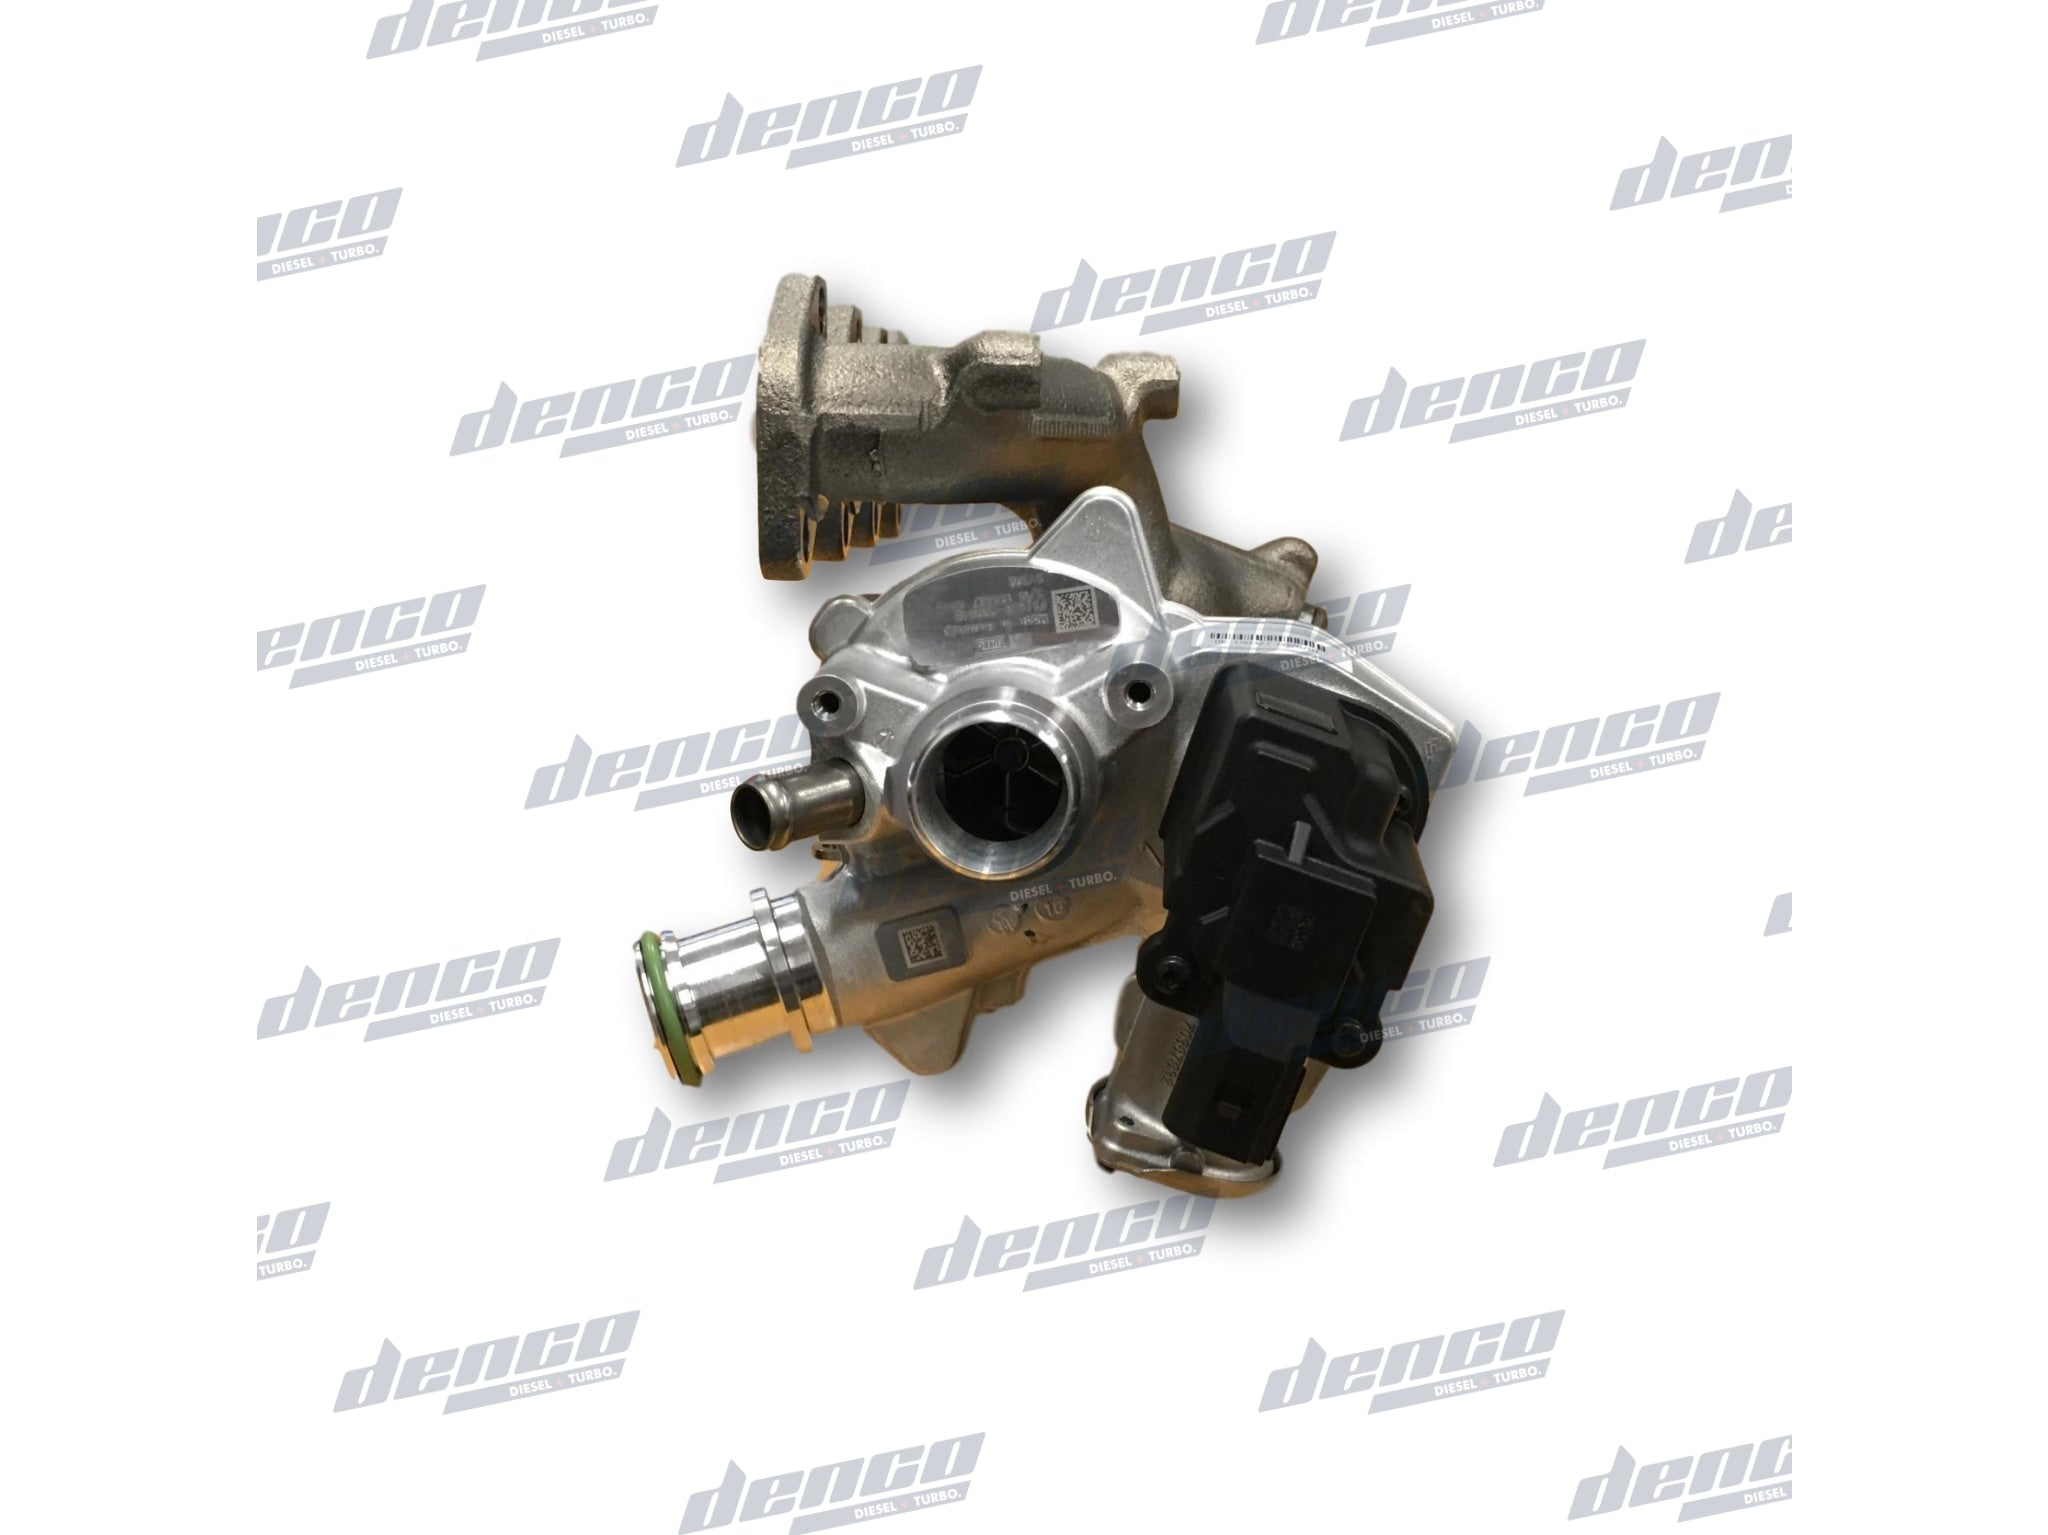 Buy Turbo Charger Online   Denco Diesel and Turbo